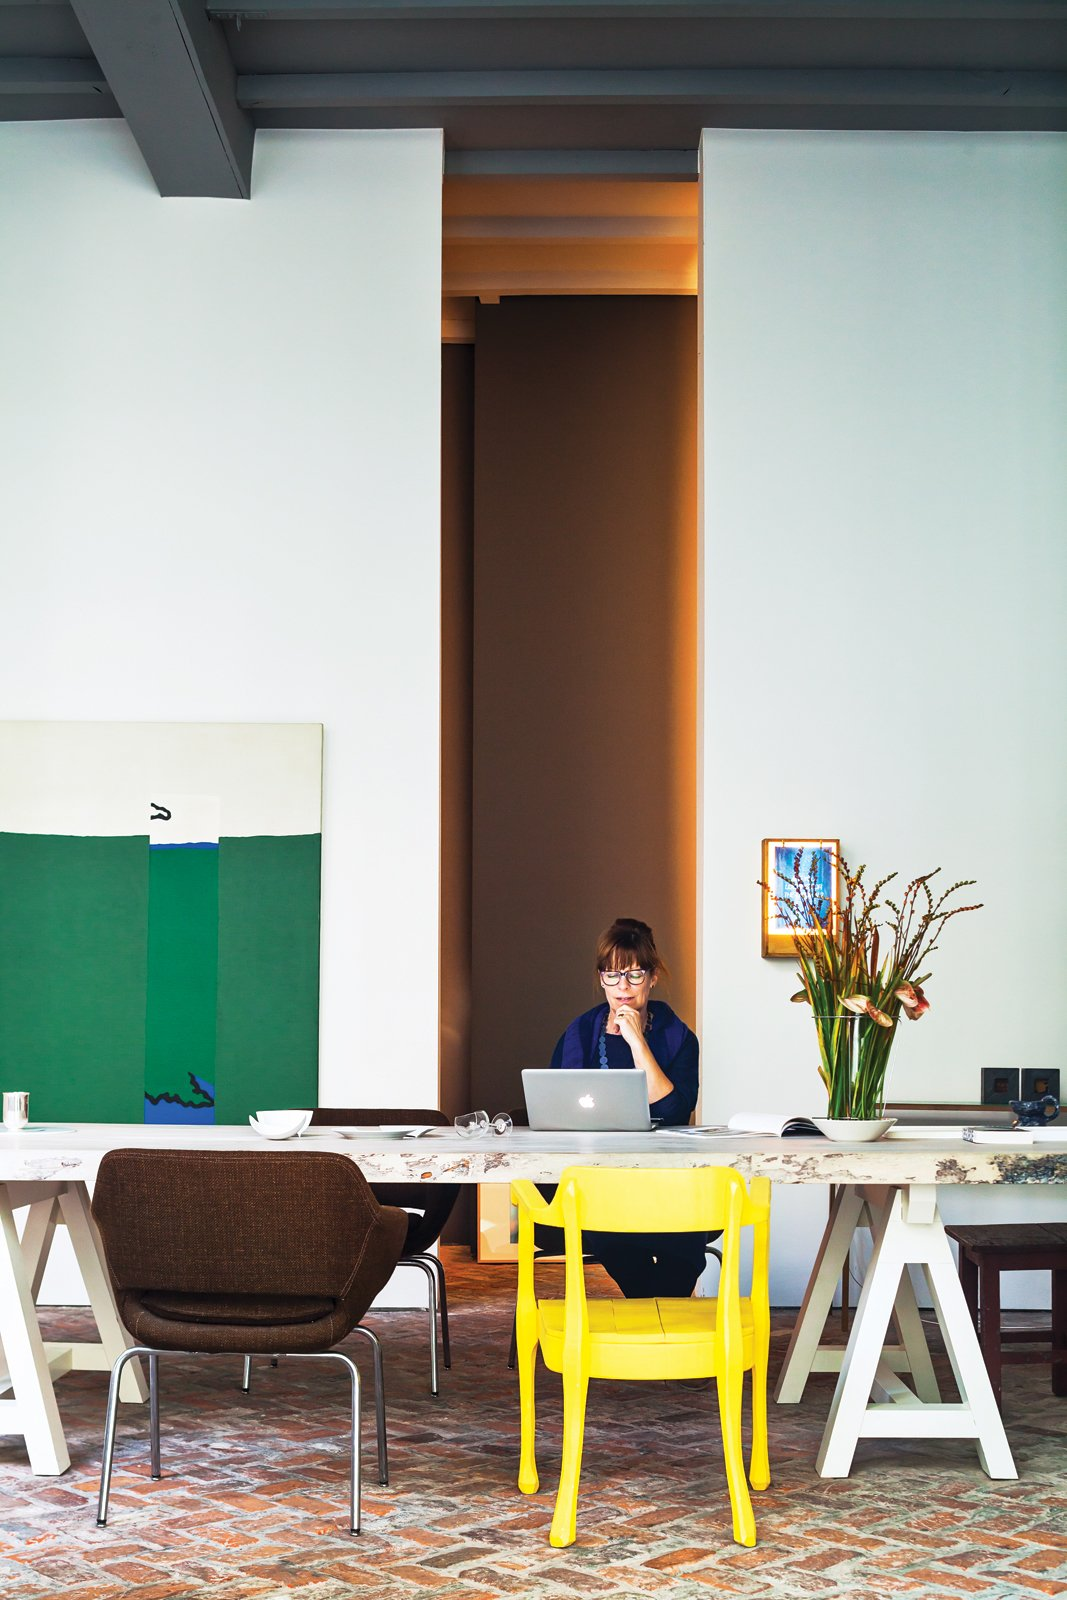 Office, Desk, and Chair With the help of architect Bart Lens, Veerle Wenes and Bob Christiaens merged a 19th-century building with a 1970s one to create a combined home and art gallery in Antwerp. In the dining room downstairs, Wenes entertains family, friends, and gallery visitors. The yellow chair is by Jens Fager.  Best Photos from This House Proves Art Galleries Can Be Super-Friendly